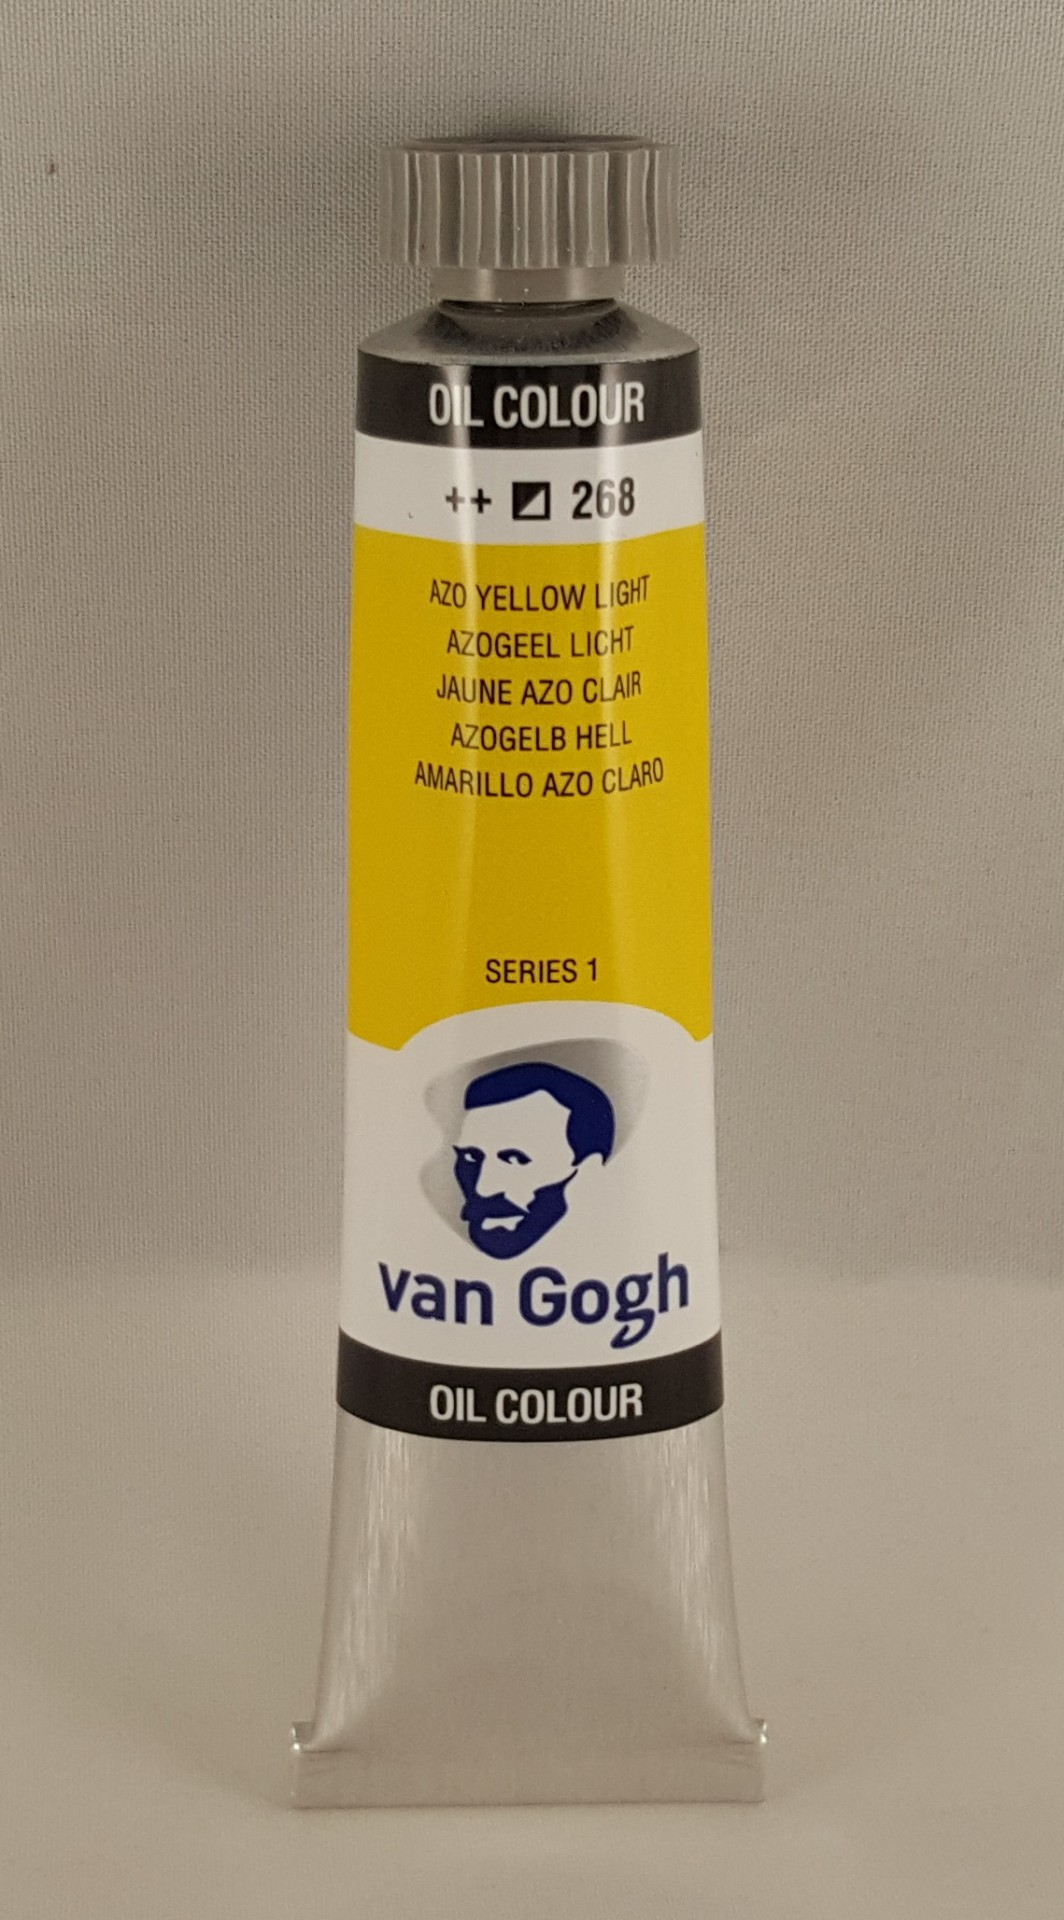 Tinta de óleo Van Gogh azo yellow light